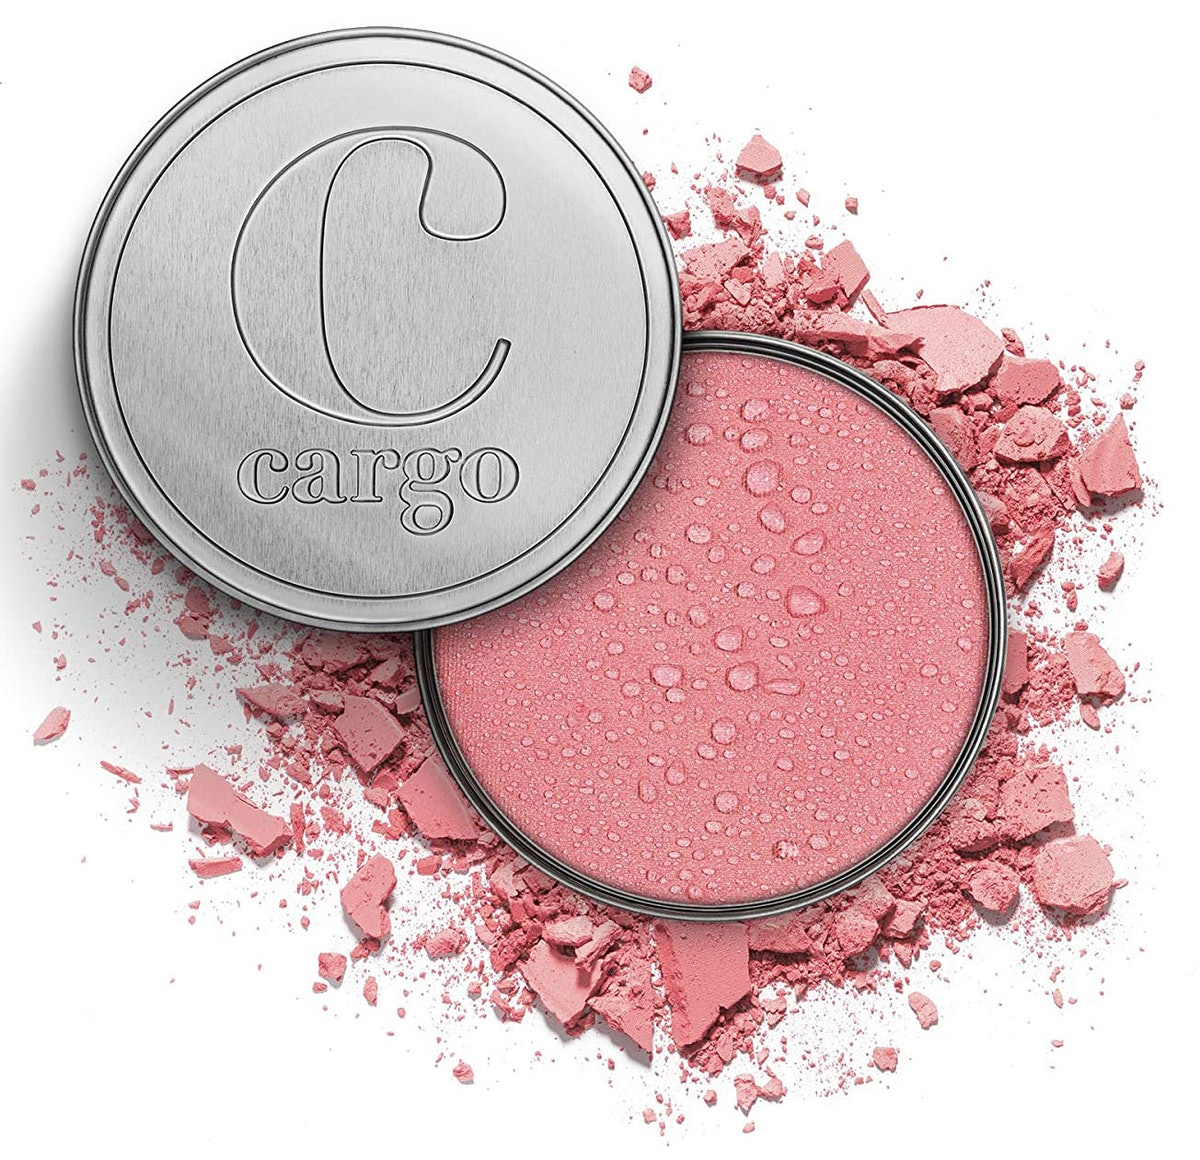 Cargo Cosmetics Swimmables Blush Makeup